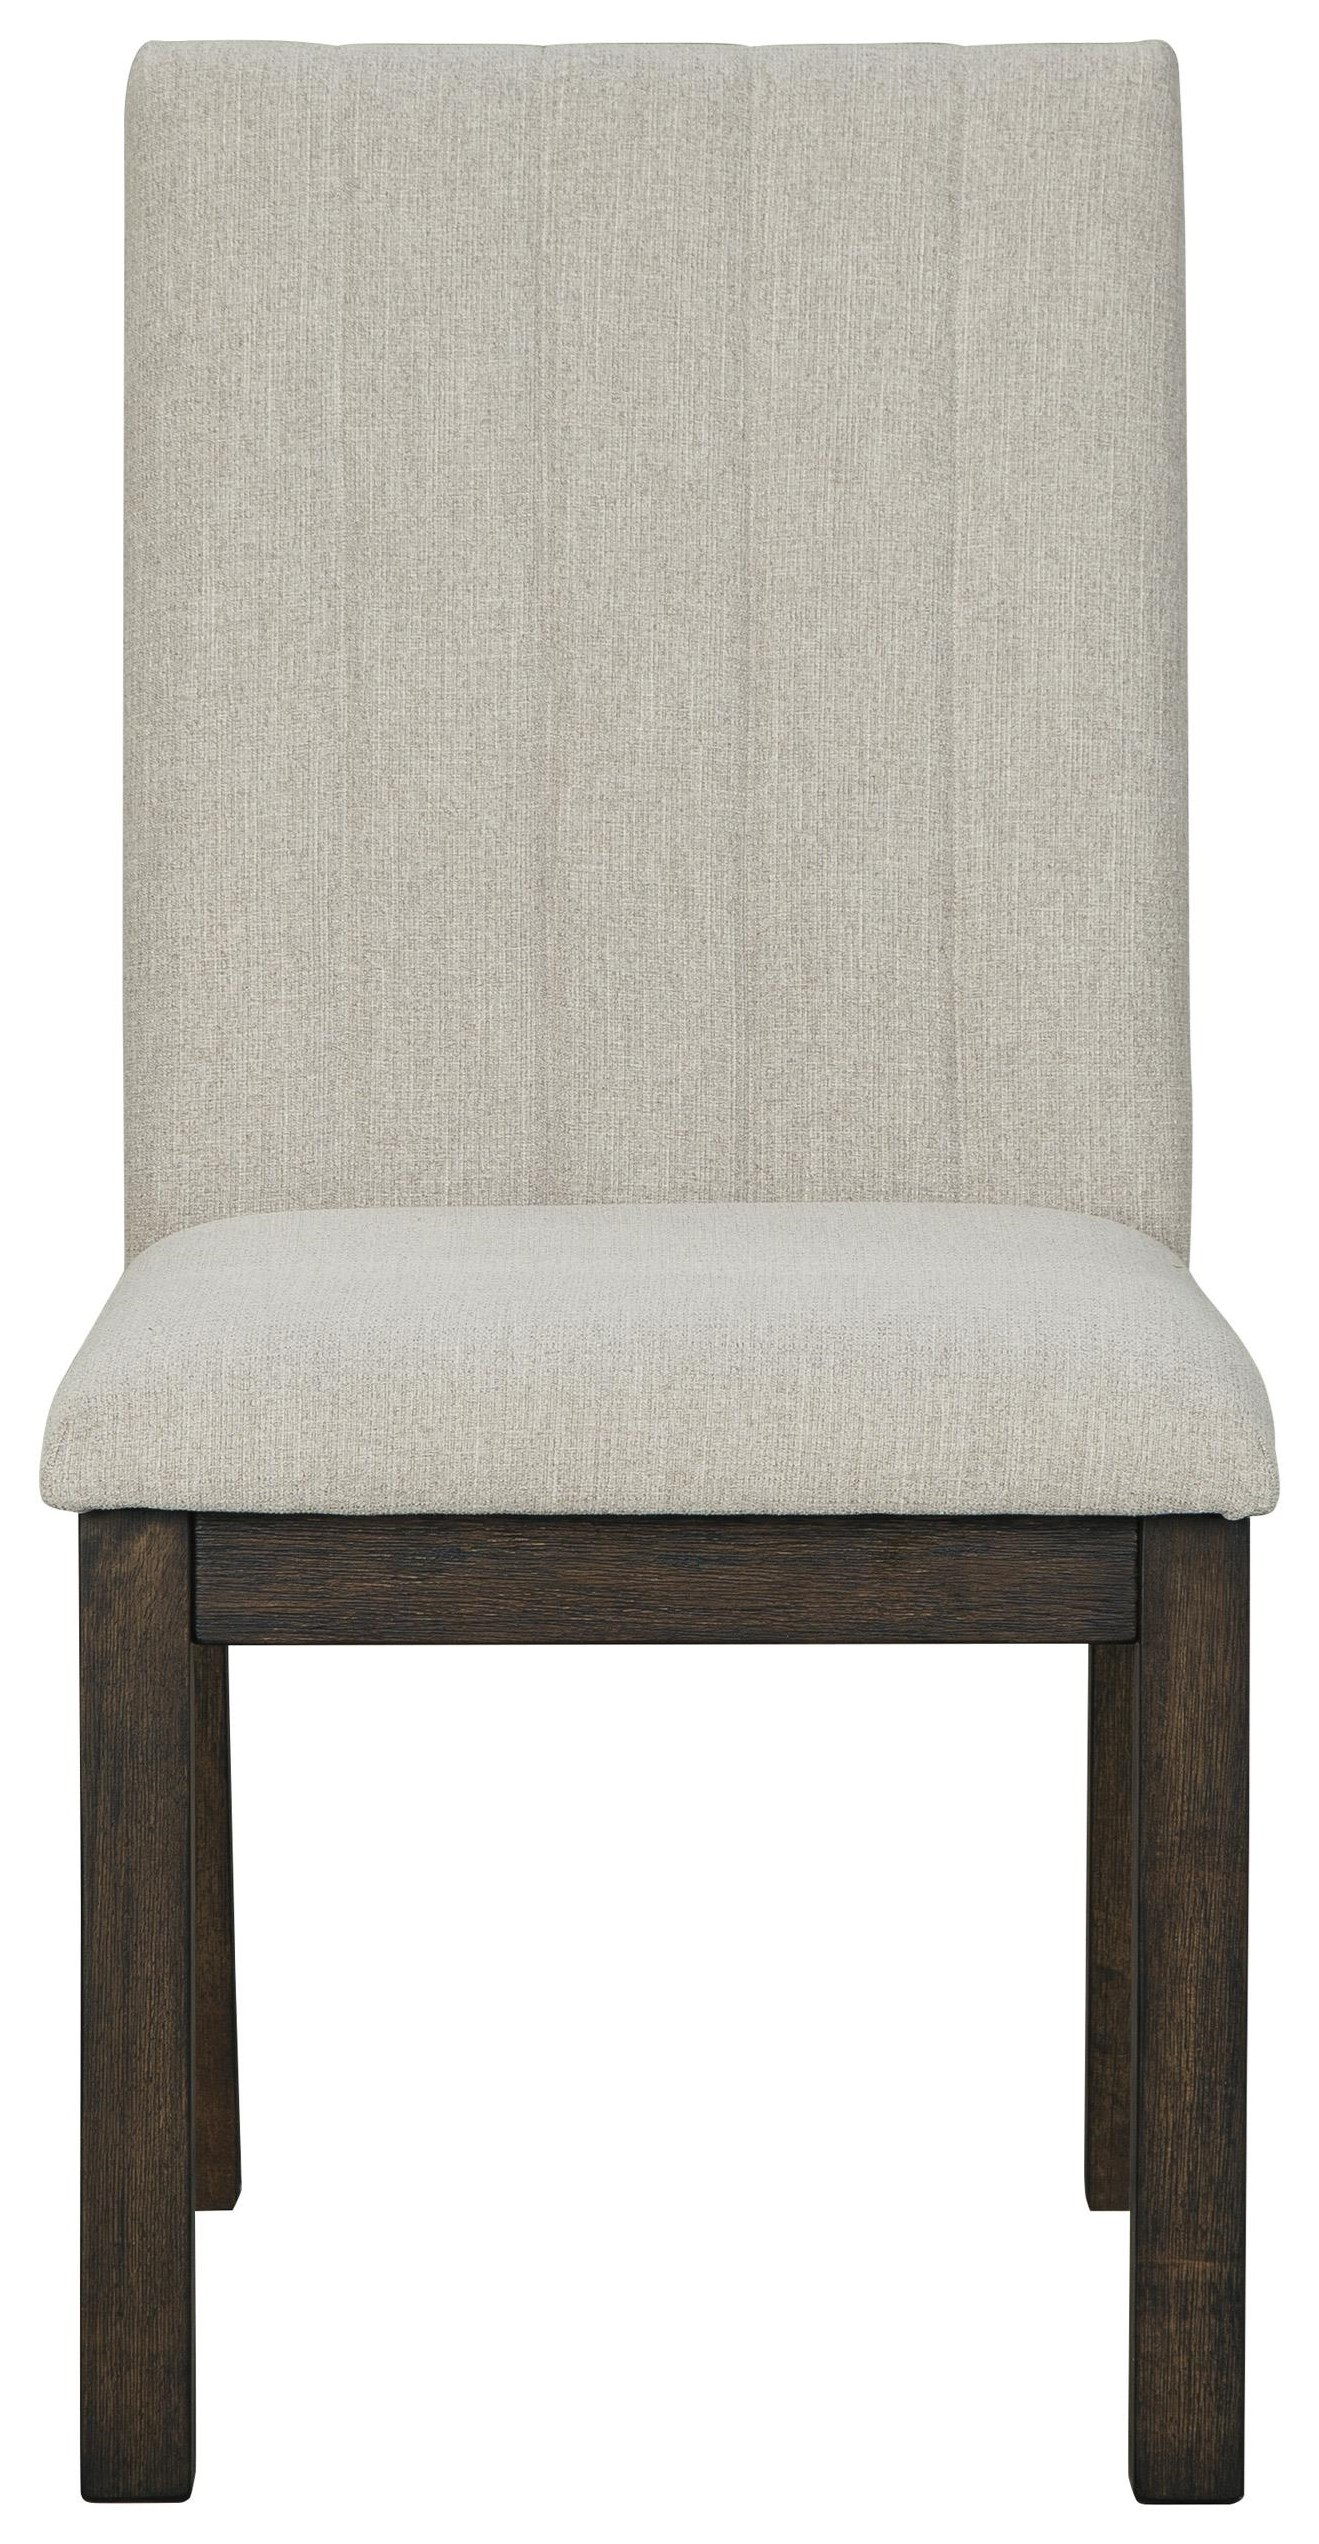 Dellbeck Dining Chair by Signature Design by Ashley at HomeWorld Furniture